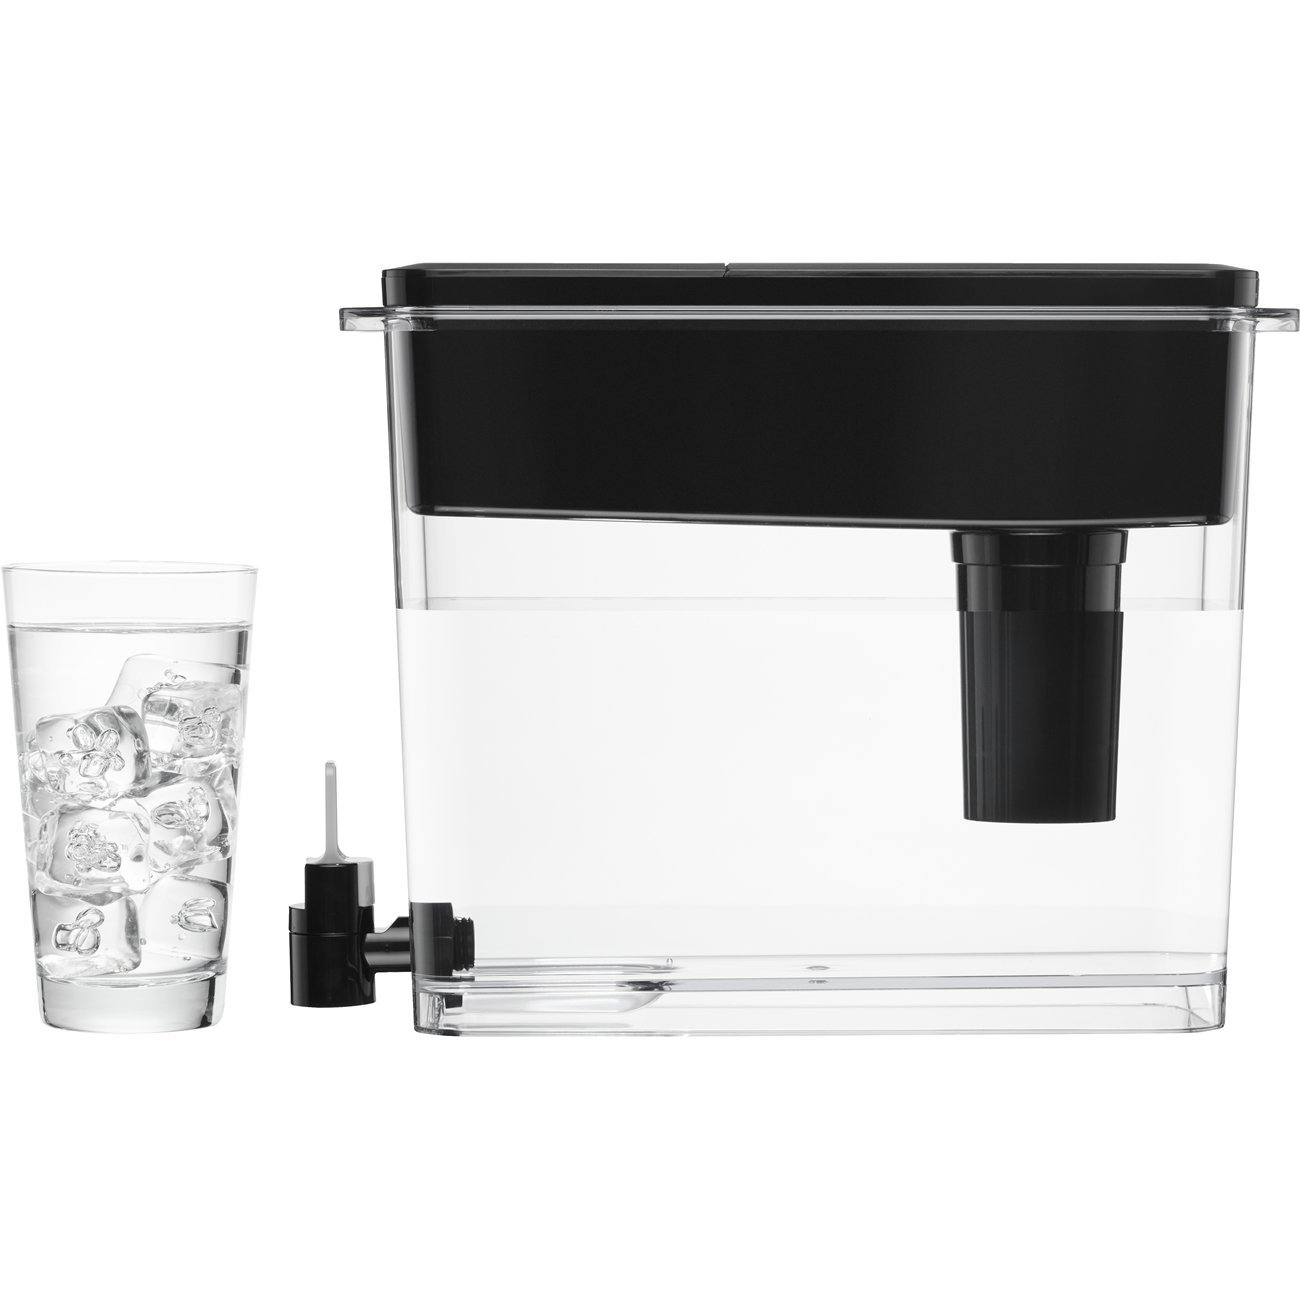 Brita Extra Large 18 Cup Filtered Water Dispenser with 1 Longlast Filter, Reduces Lead, BPA Free – Ultramax, Jet Black by Brita (Image #7)